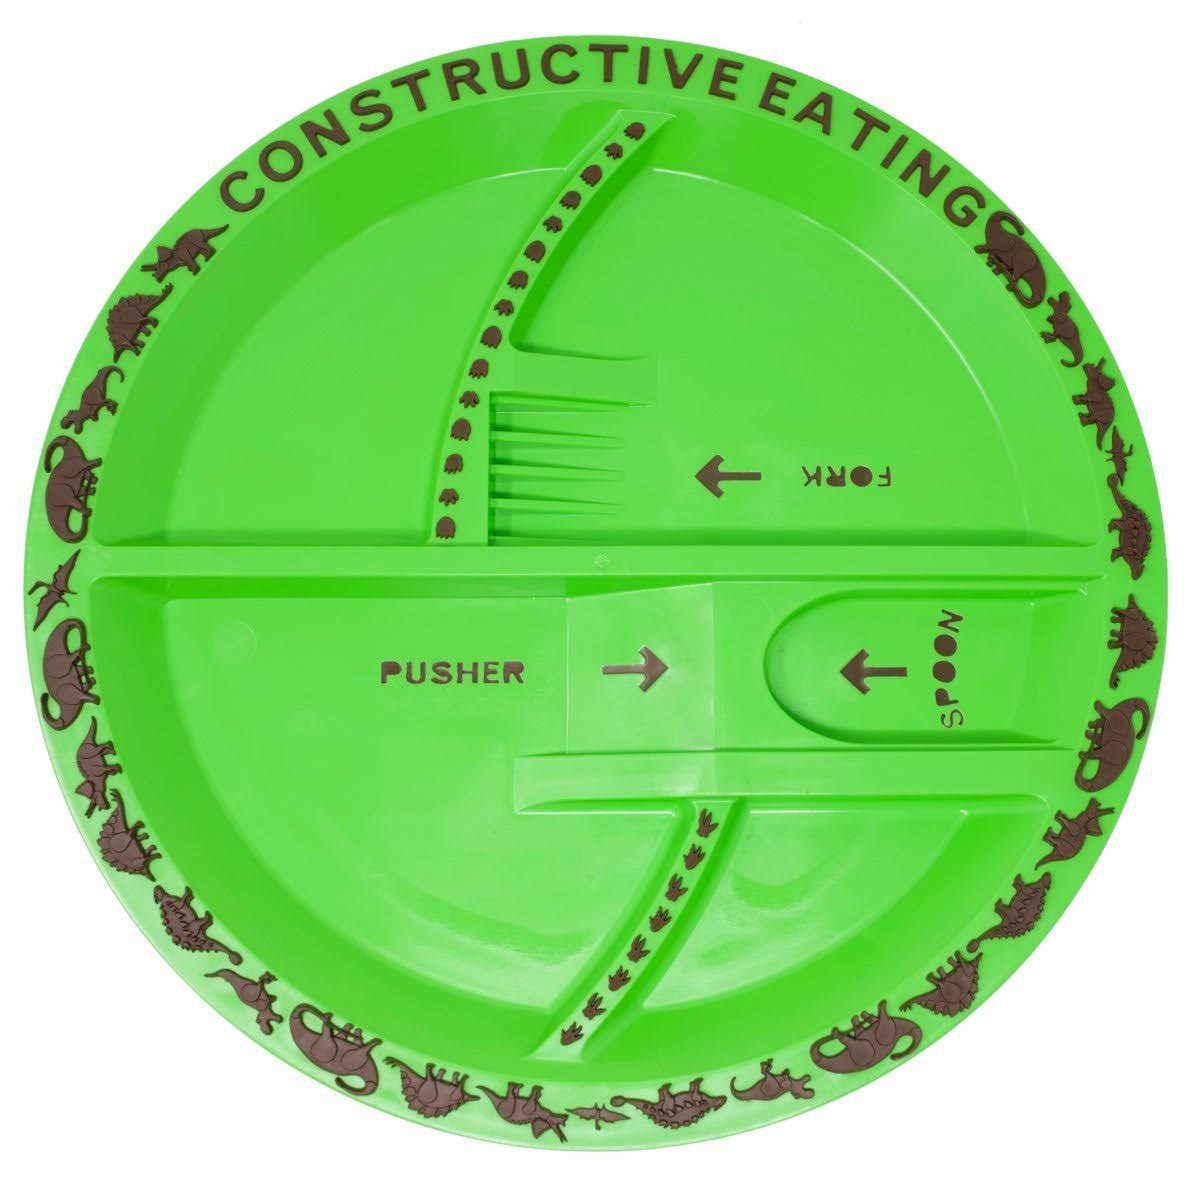 Constructive Eating Dinosaur Plate